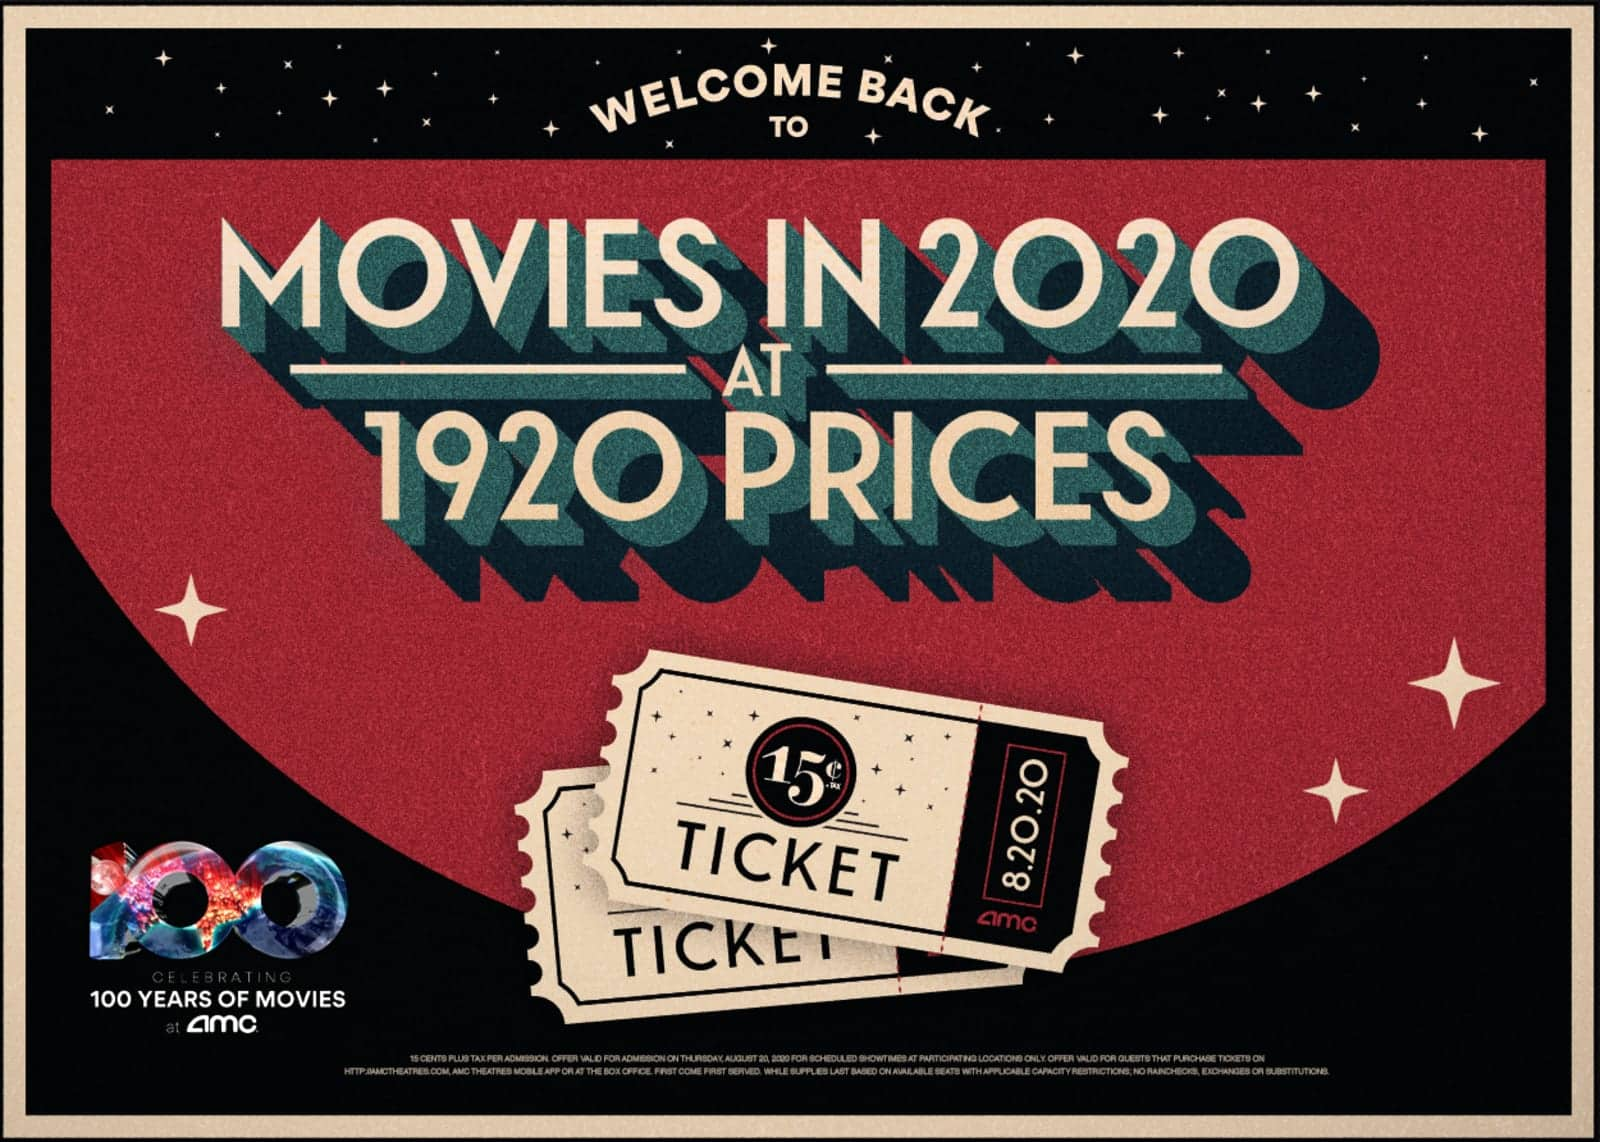 AMC Theatres: Movies Tickets for August 20th will be $0.15 (same price as 1920)